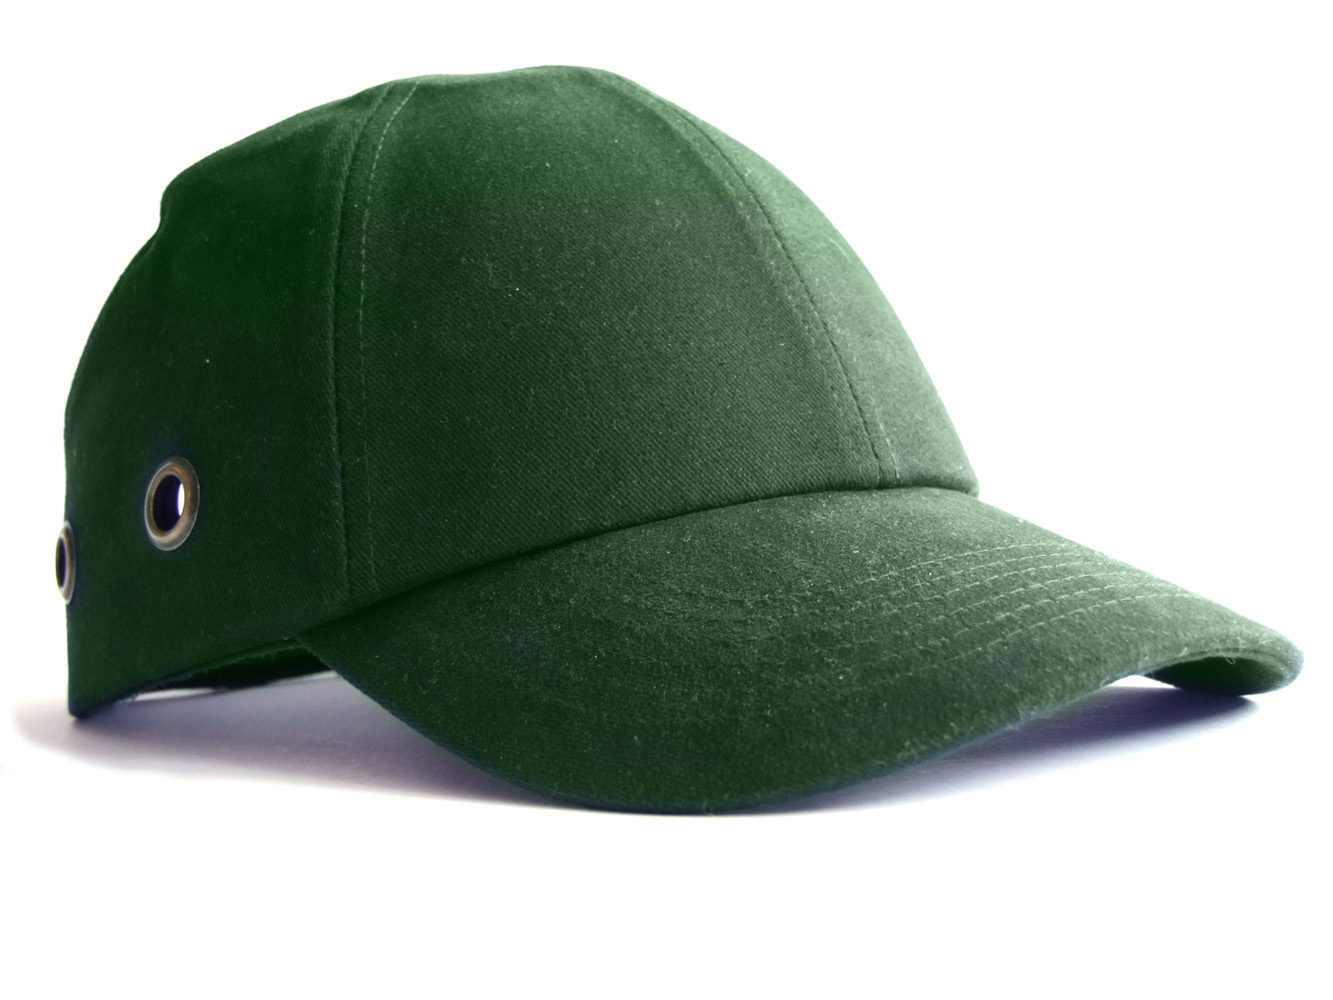 a917b42916b0b Details about Safety Baseball Cap Hard Hat Bump Cap Green Vented Velcro  Fastening Adjustable